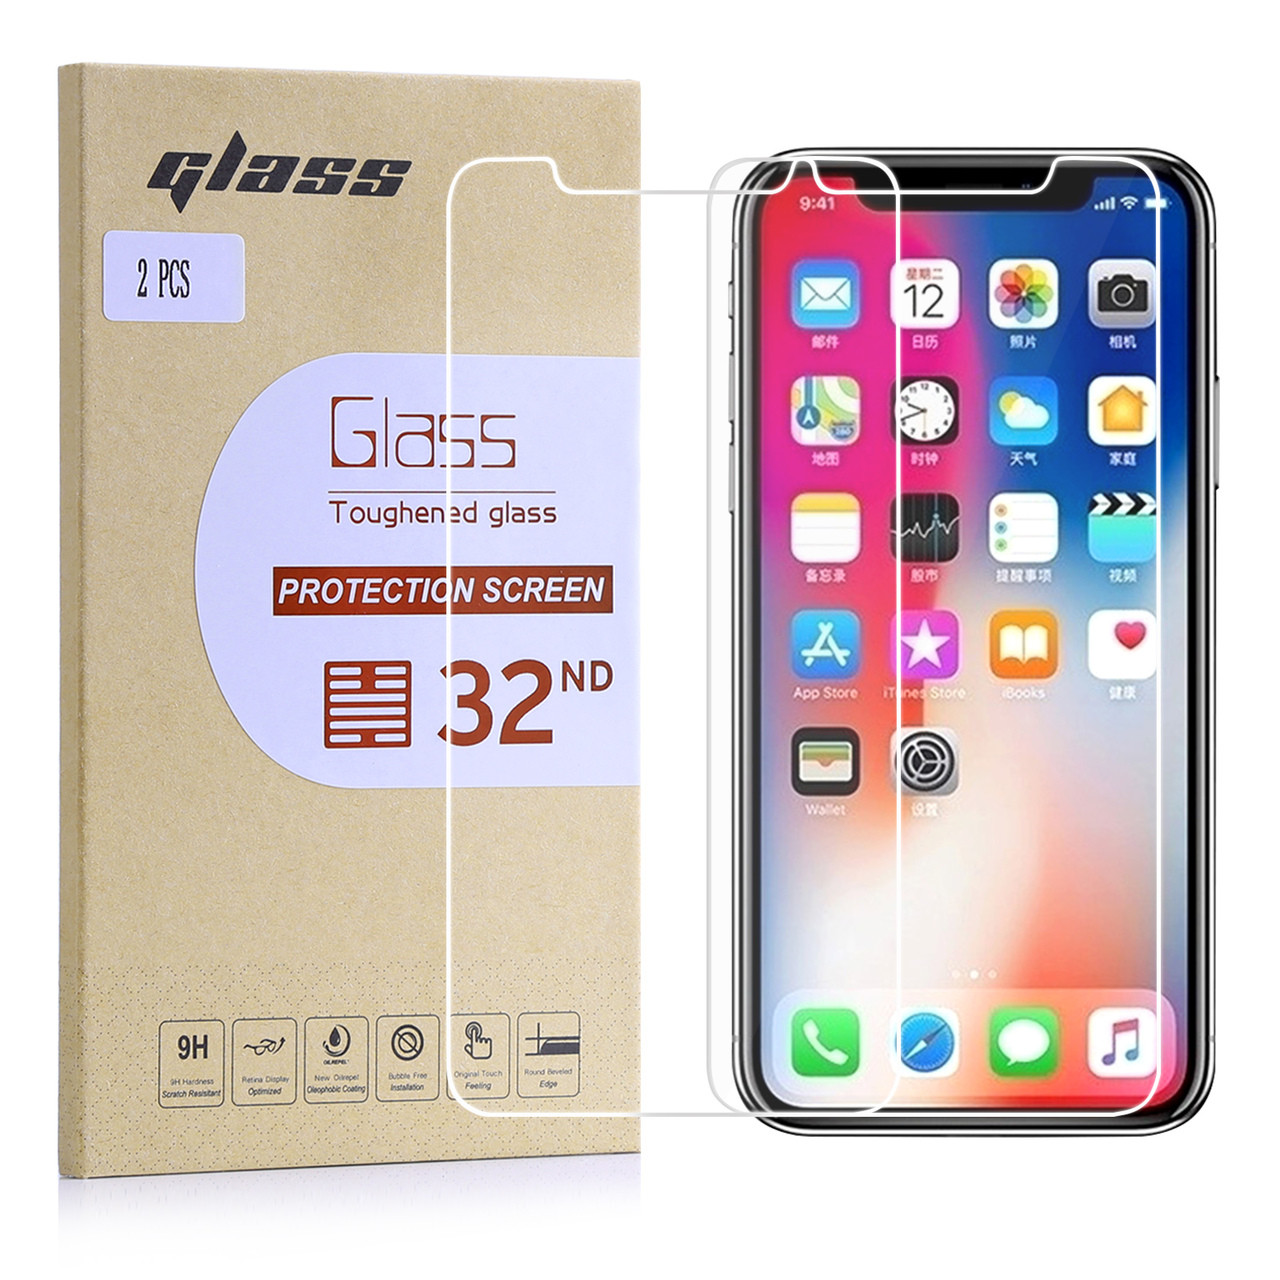 Apple iPhone X / XS Tempered Glass Screen Protector - 2 Pack